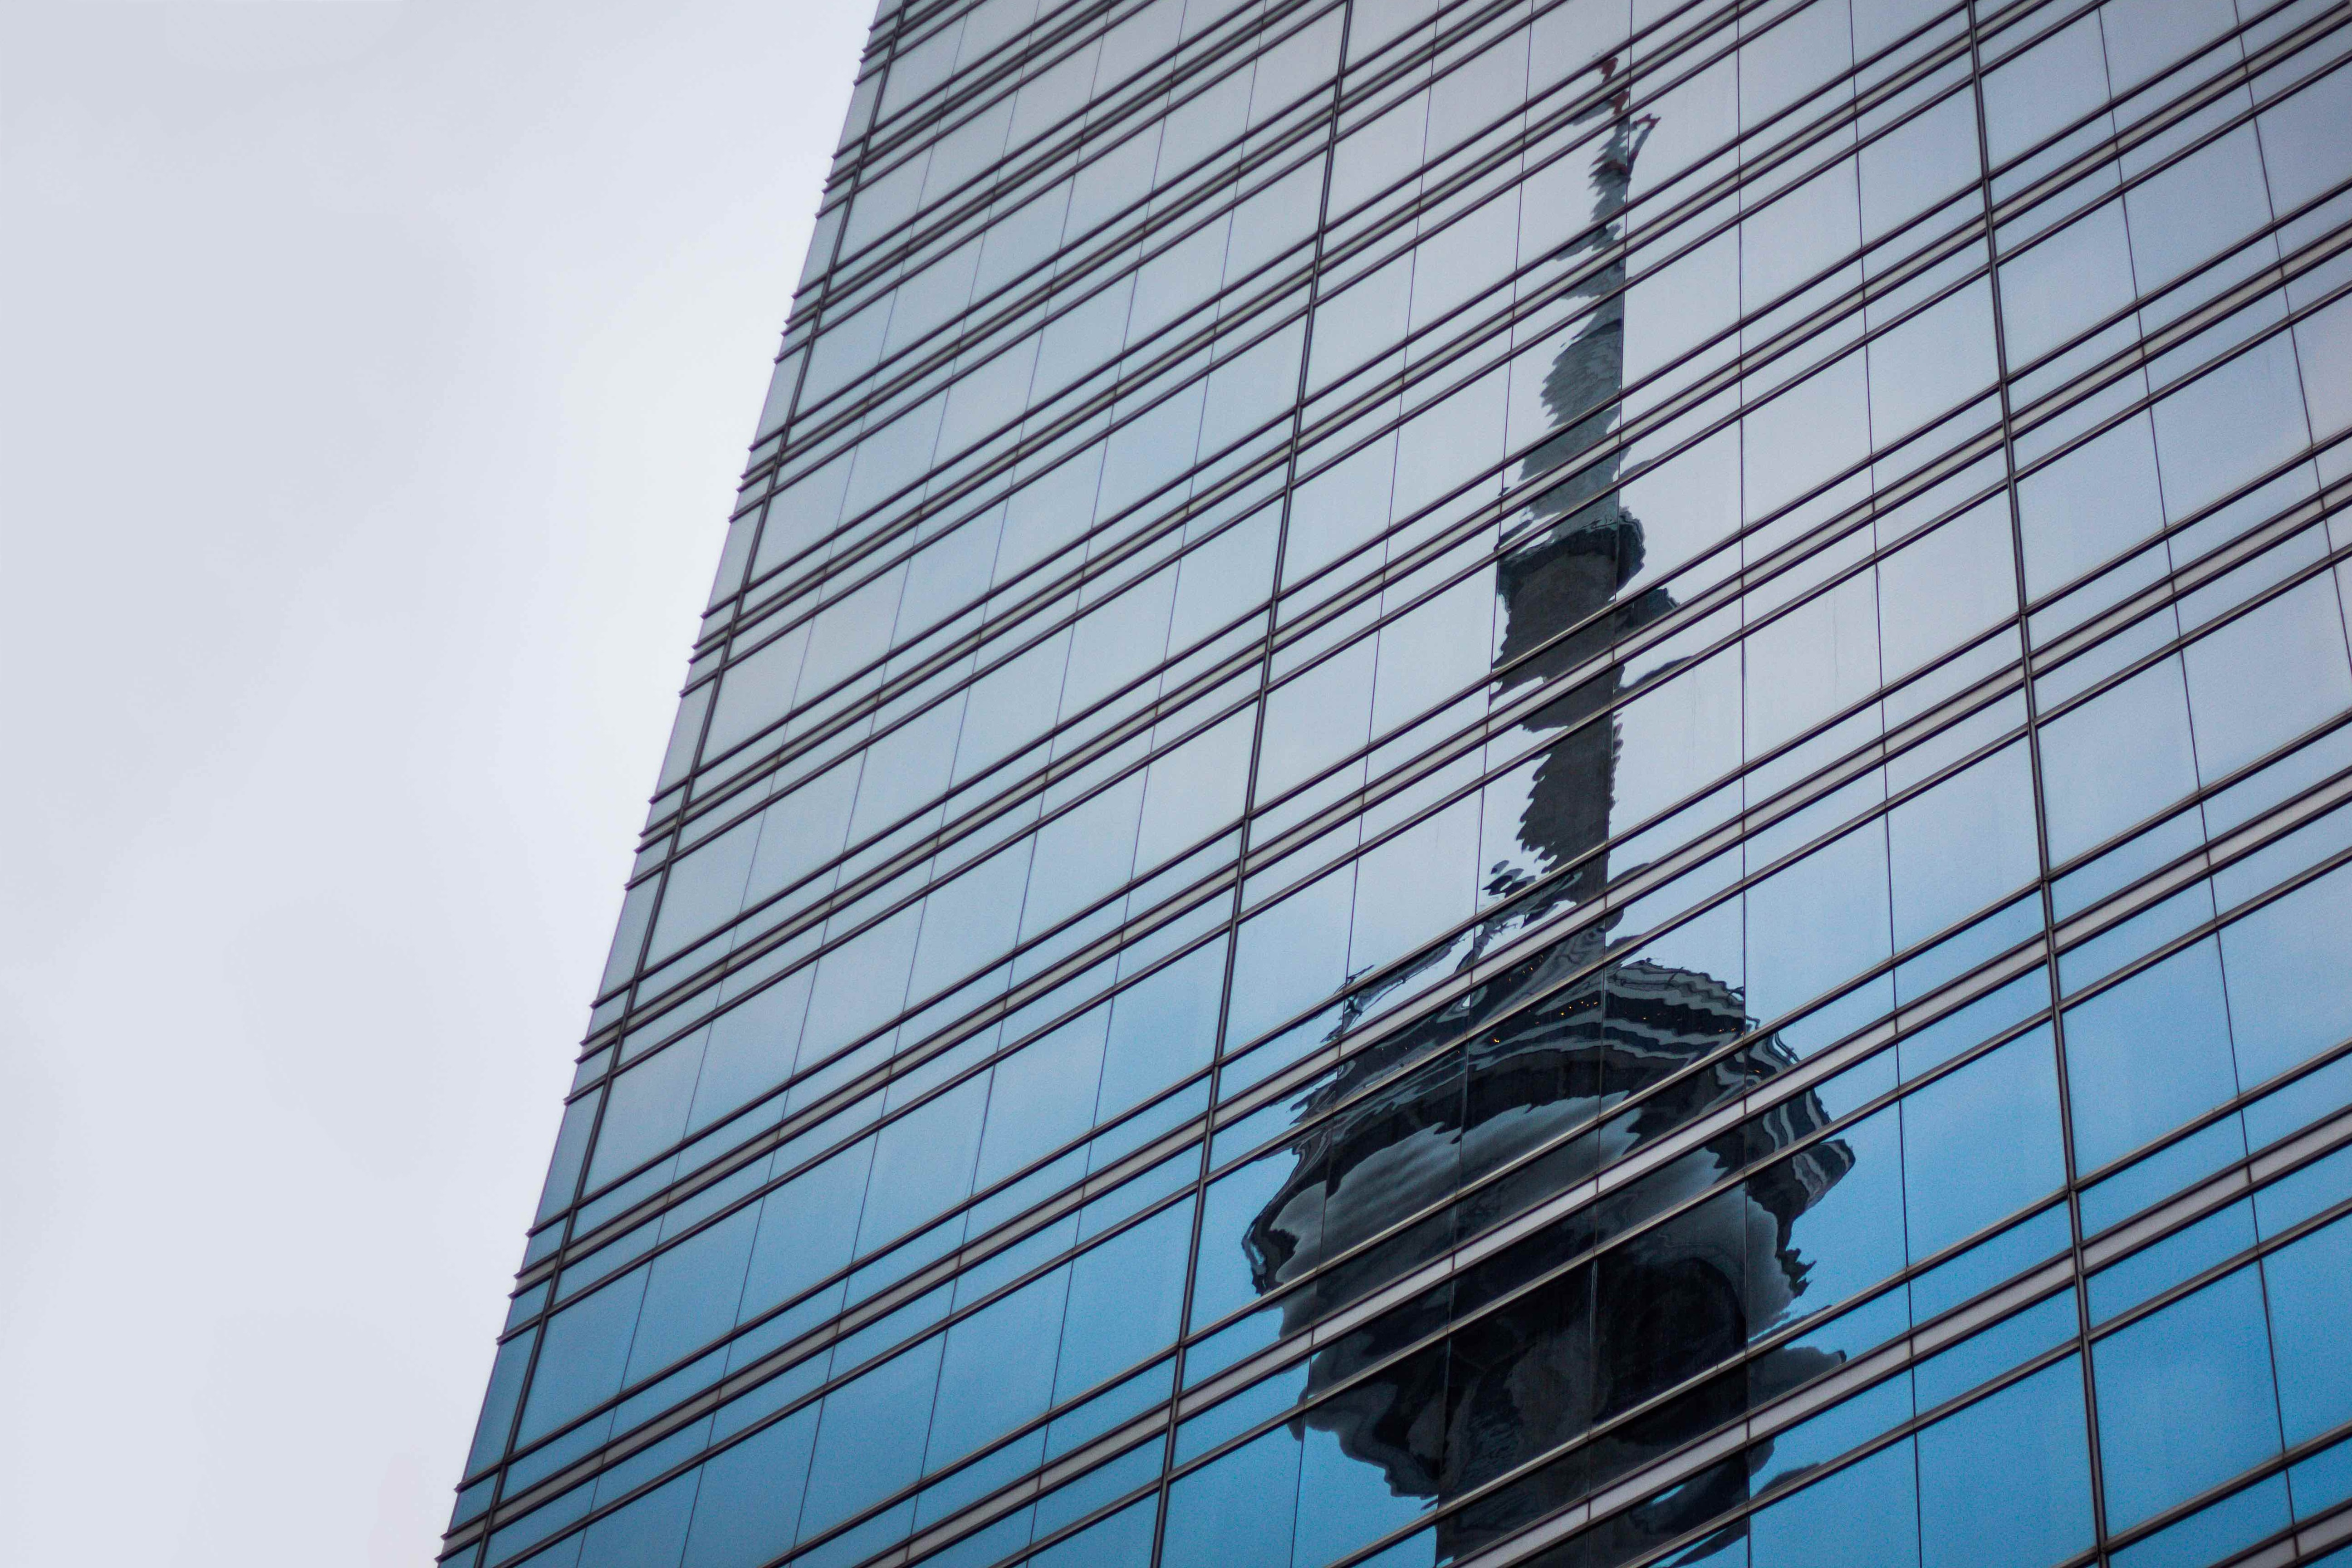 Corporate skyscraper window during daytime with reflection of CN Tower, Front West Street